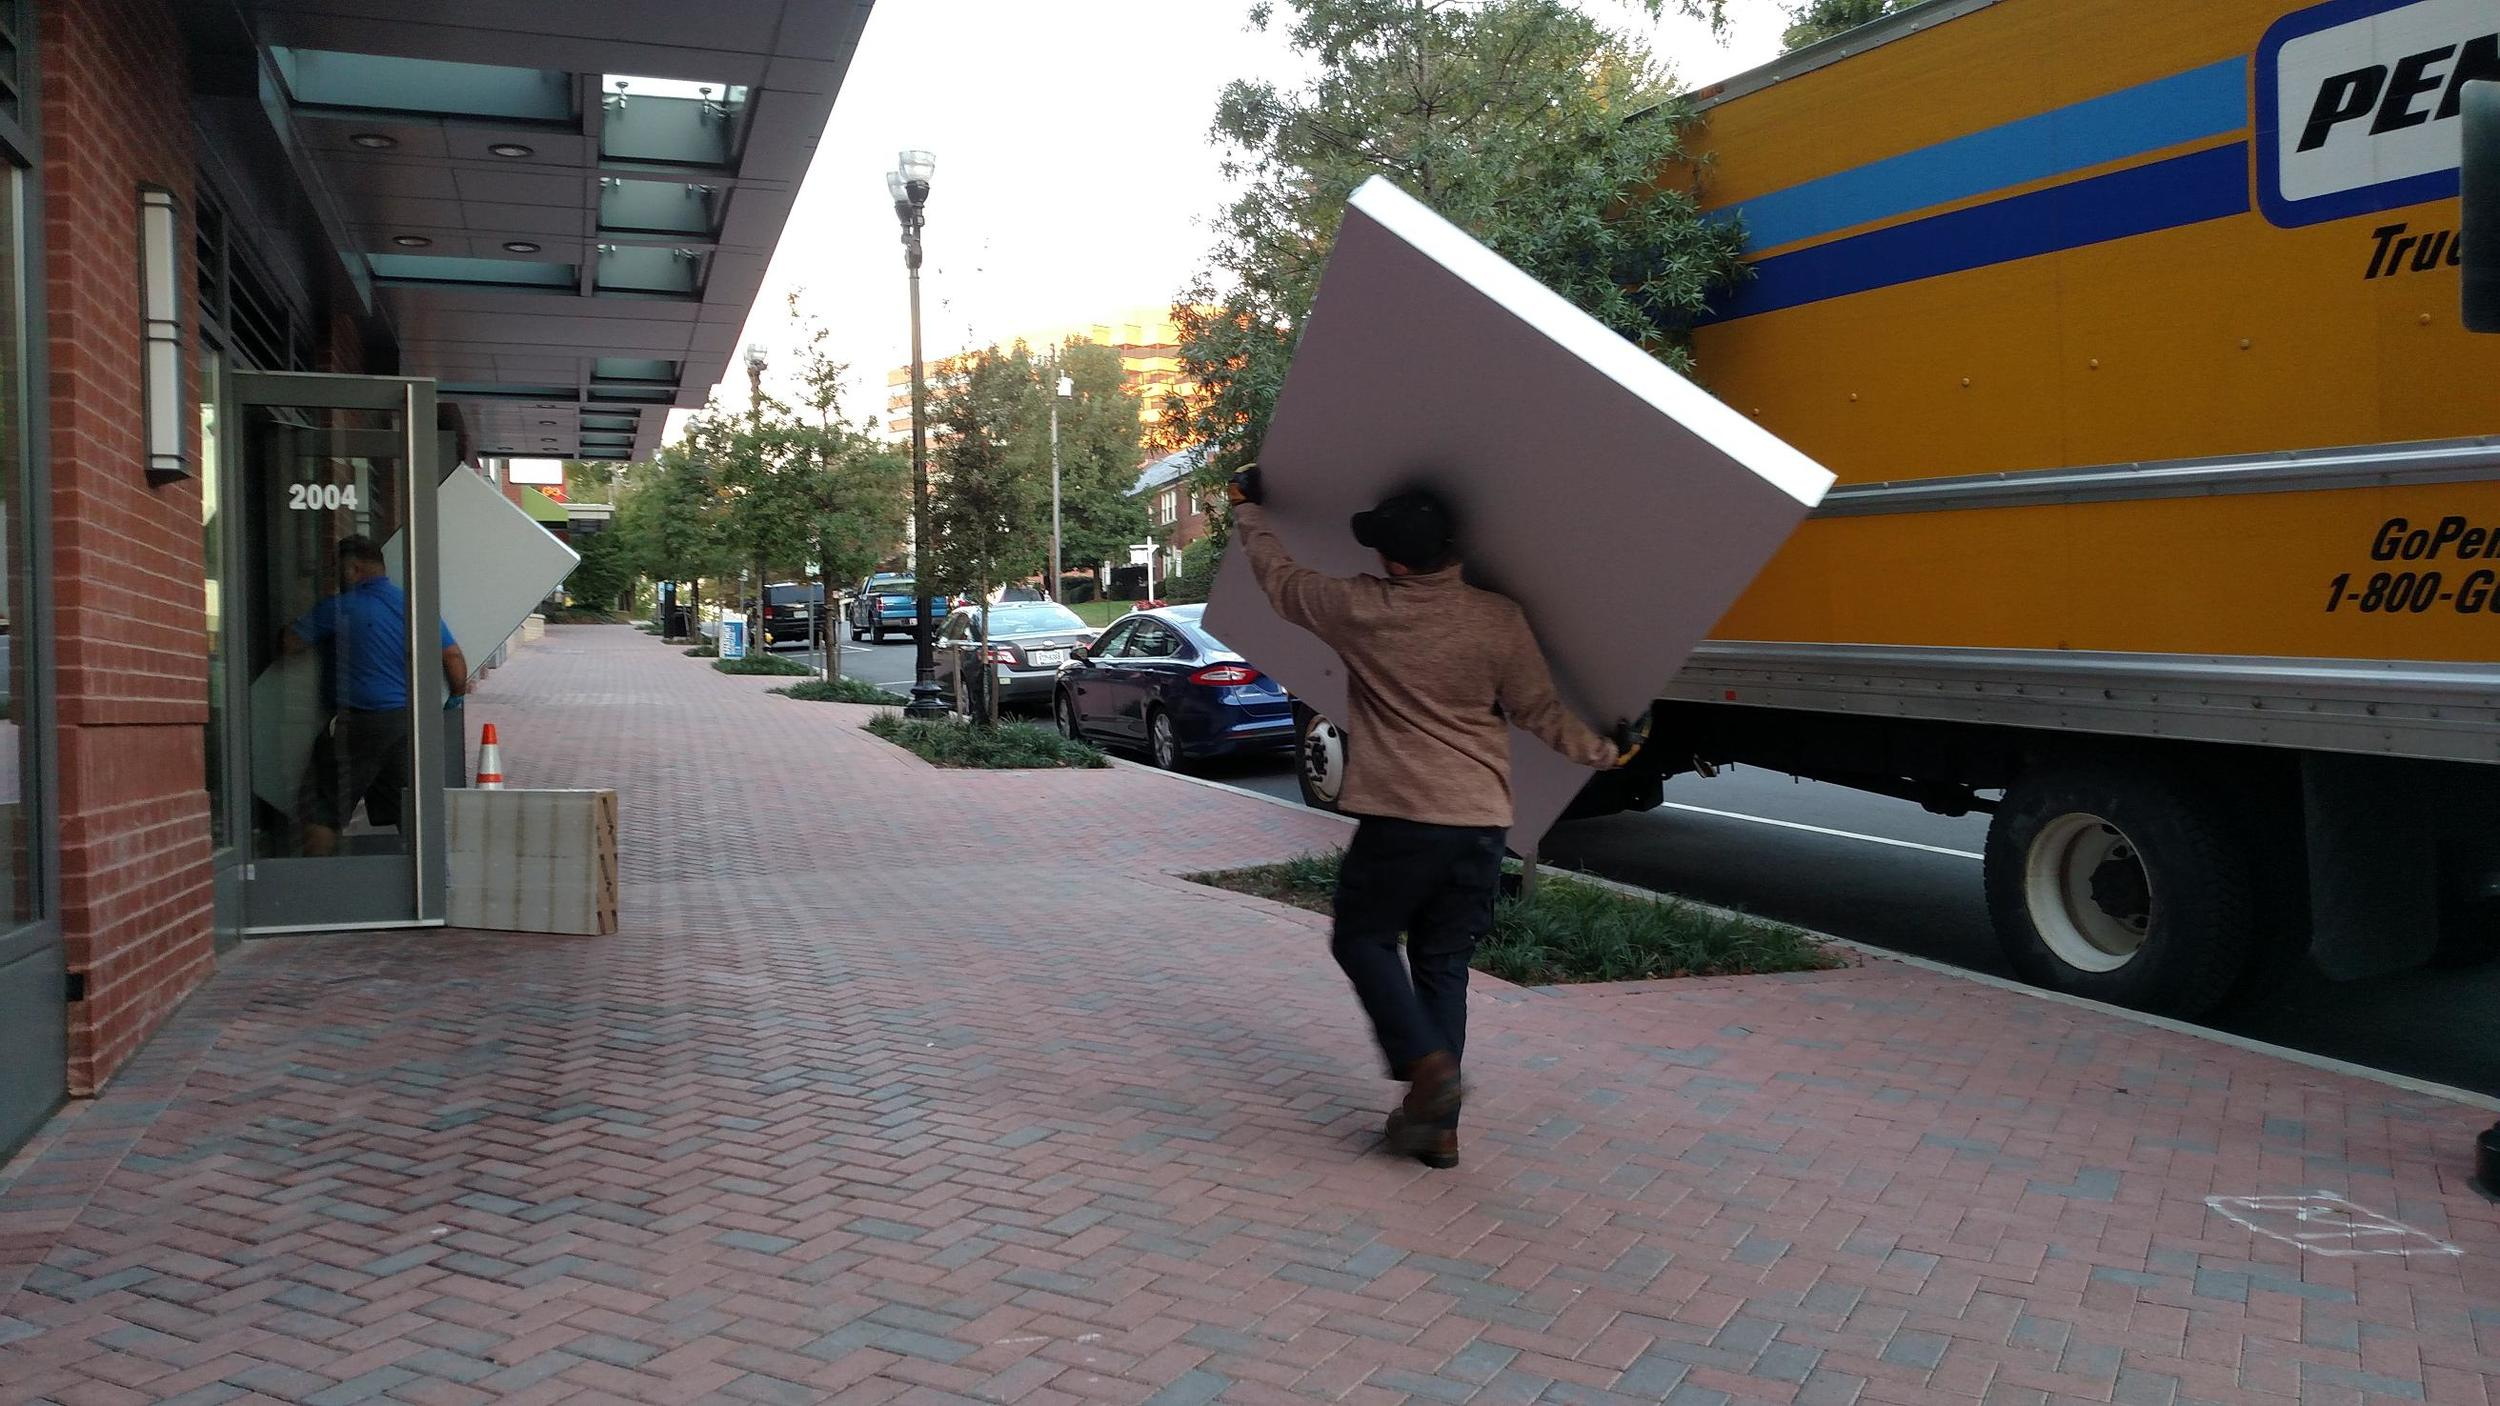 These guys carried the panels in by themselves. At 7am. We were impressed.